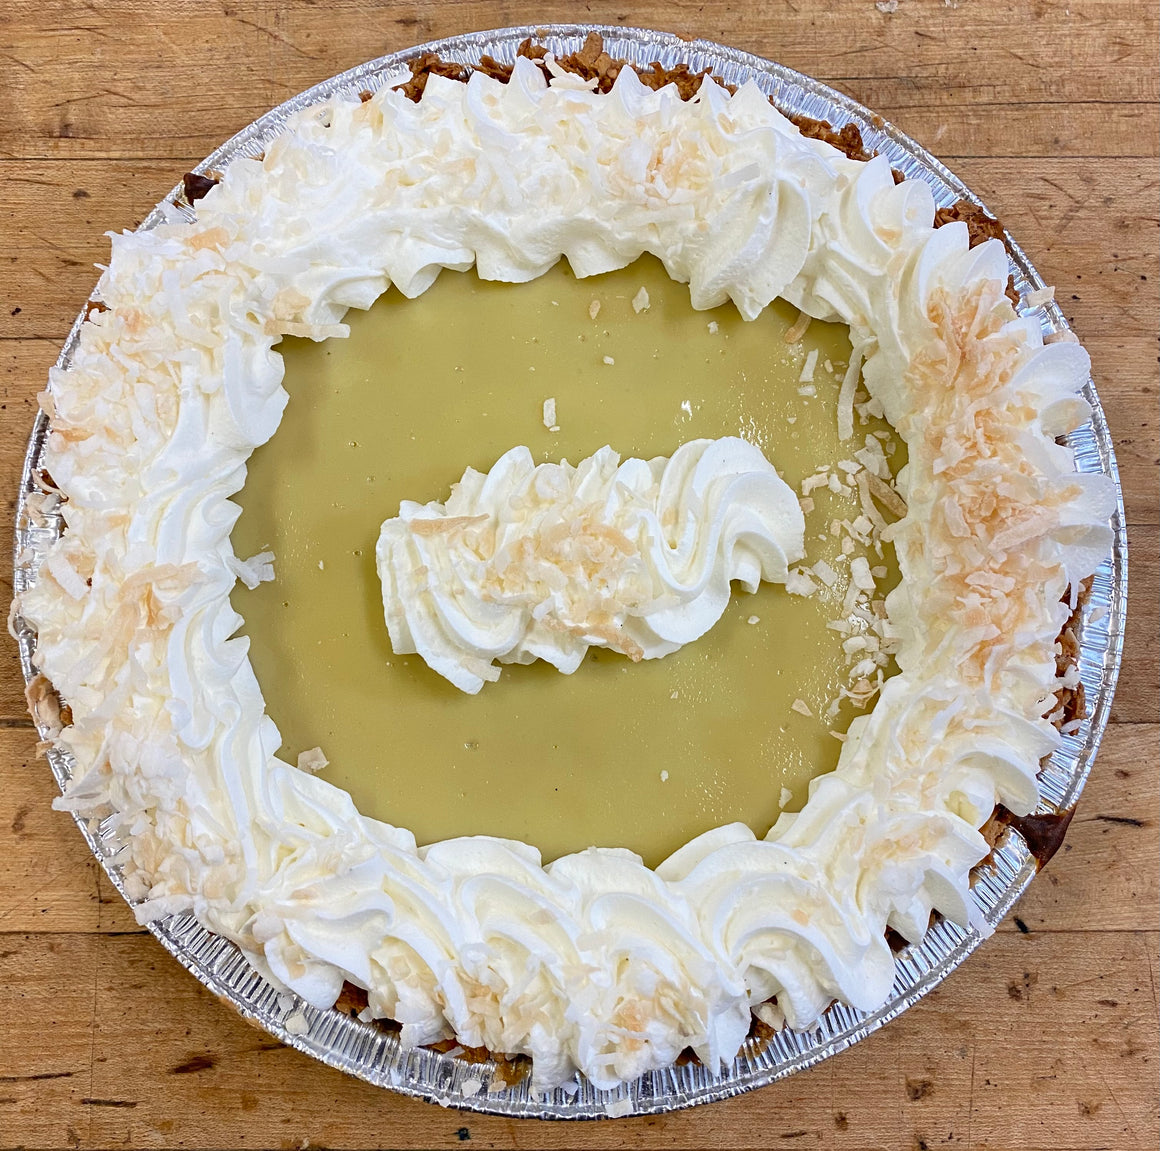 "9"" Gluten Friendly Coconut Key Lime Pie"